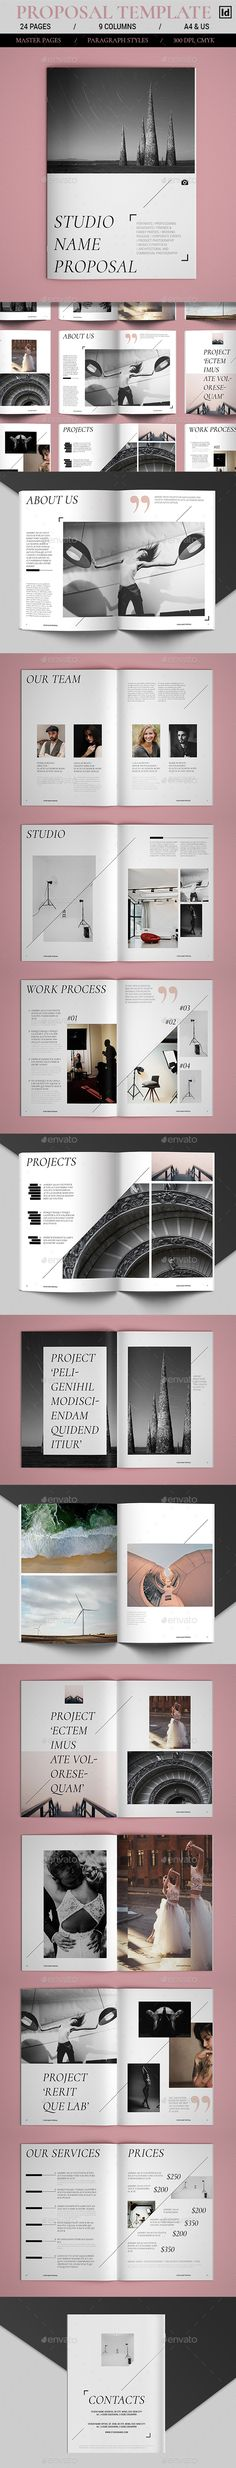 Business Proposal Indesign u0026 MS Word